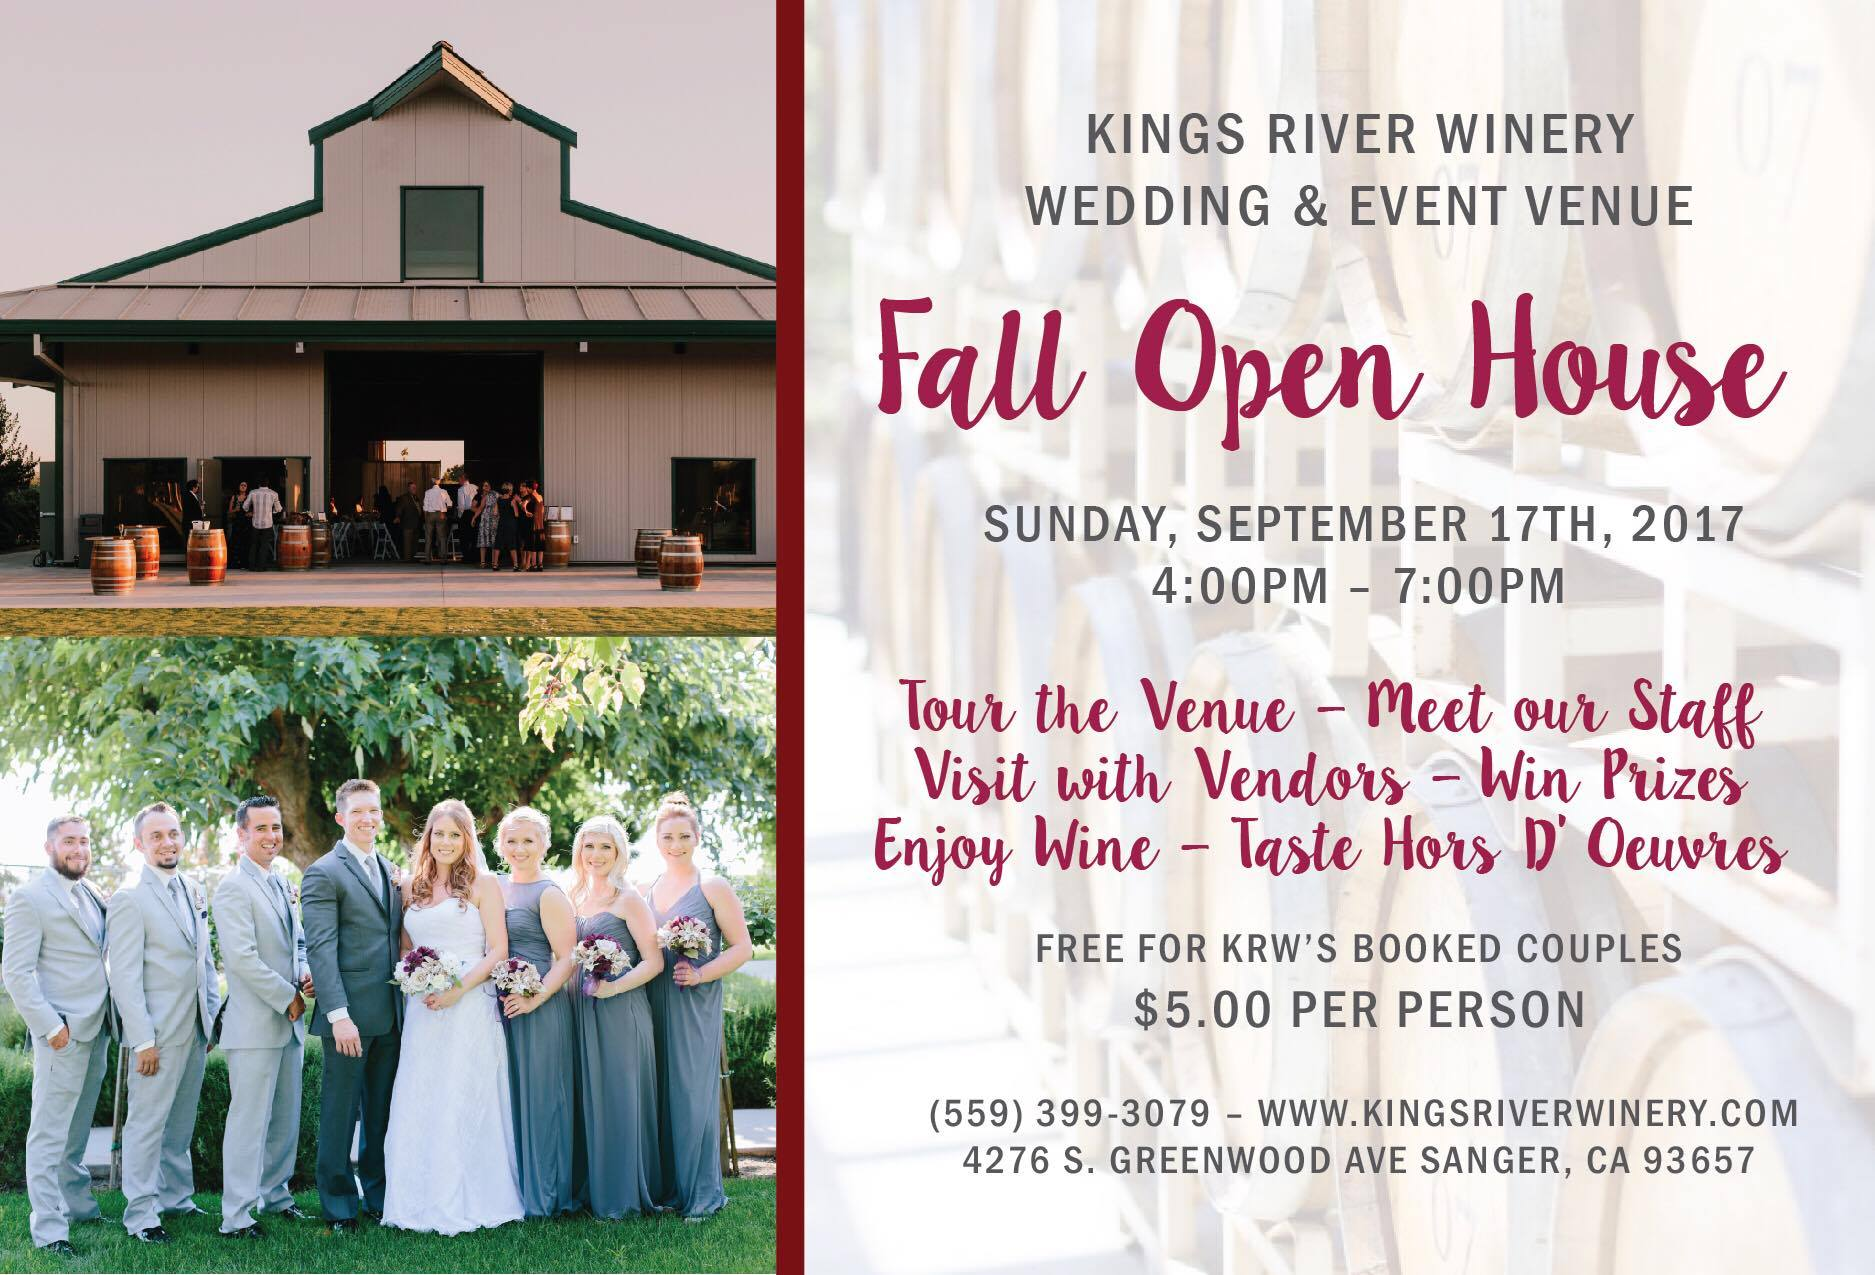 Kings river winery wedding event venue fall open house for Grand interior designs kings heath